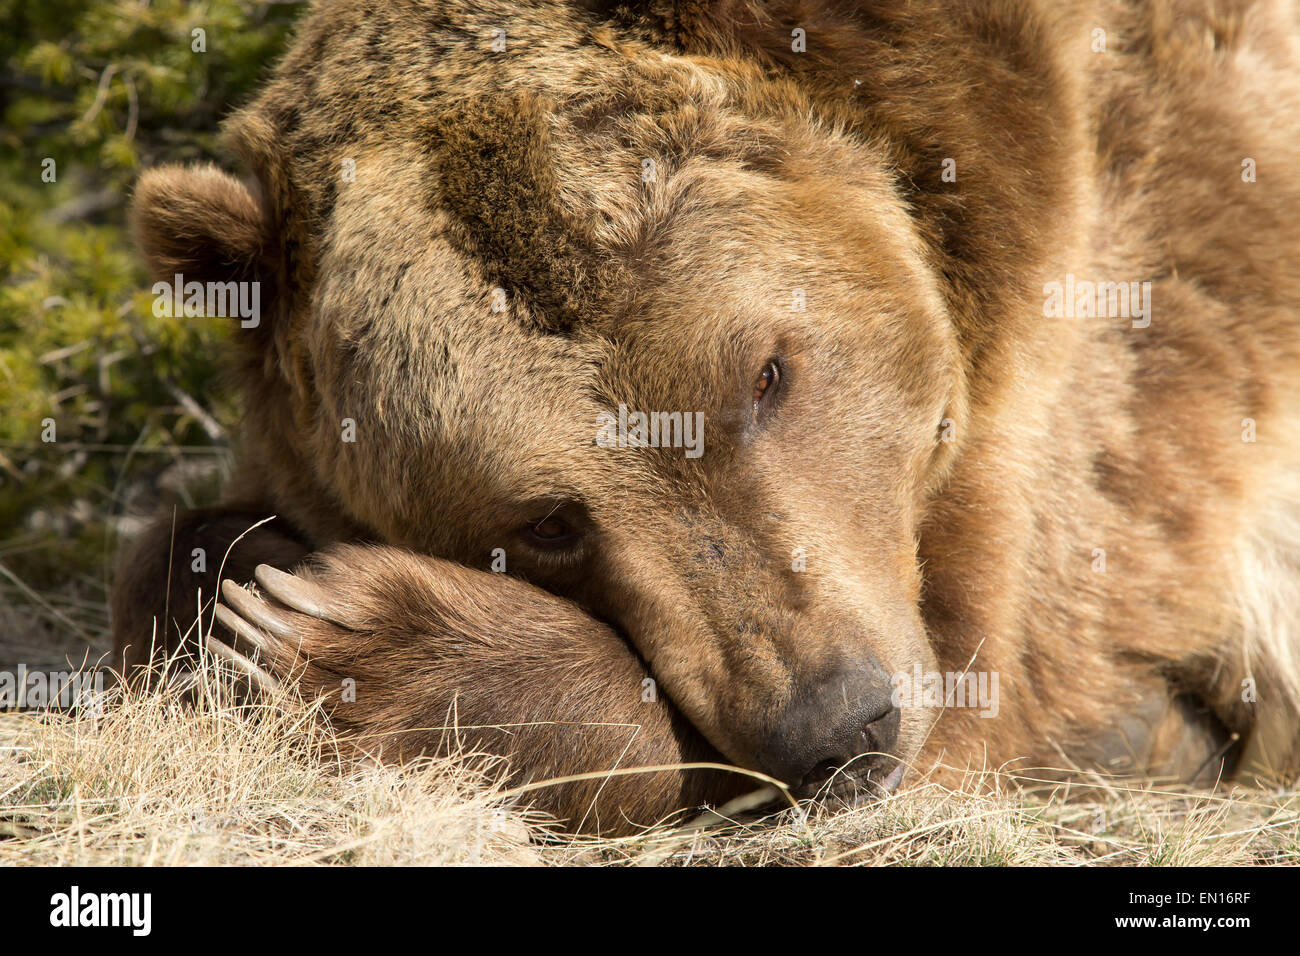 Grizzly Bear (Ursus arctos horribilis) taking a rest during the day - Stock Image